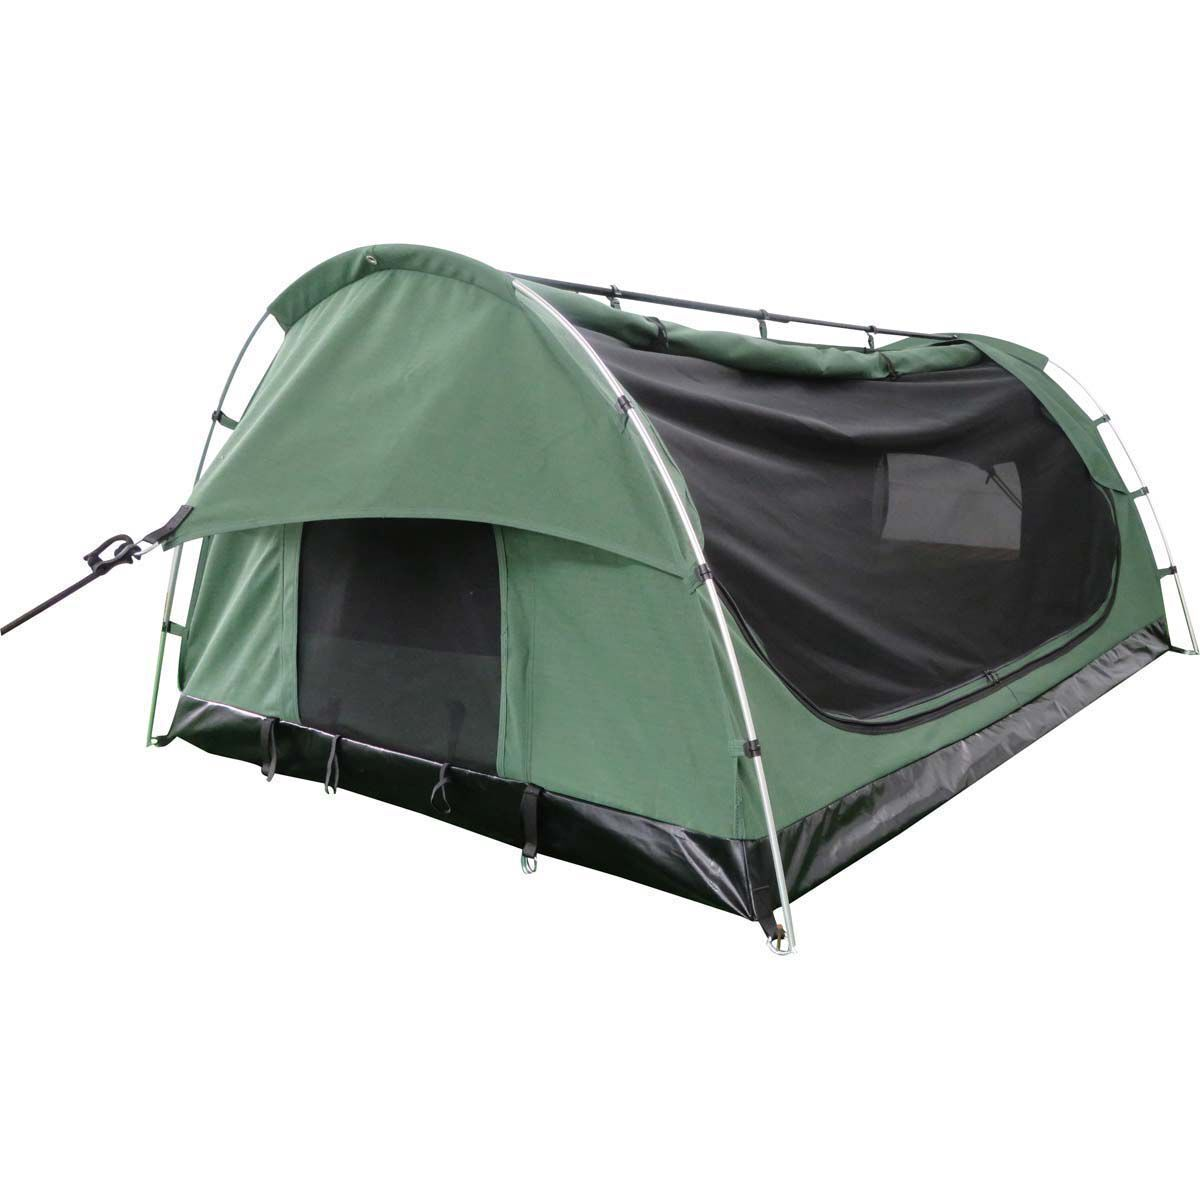 Compare up to 3 products  sc 1 st  BCF Australia & Tents Swags Shade u0026 Shelter - BCF Australia Online Store